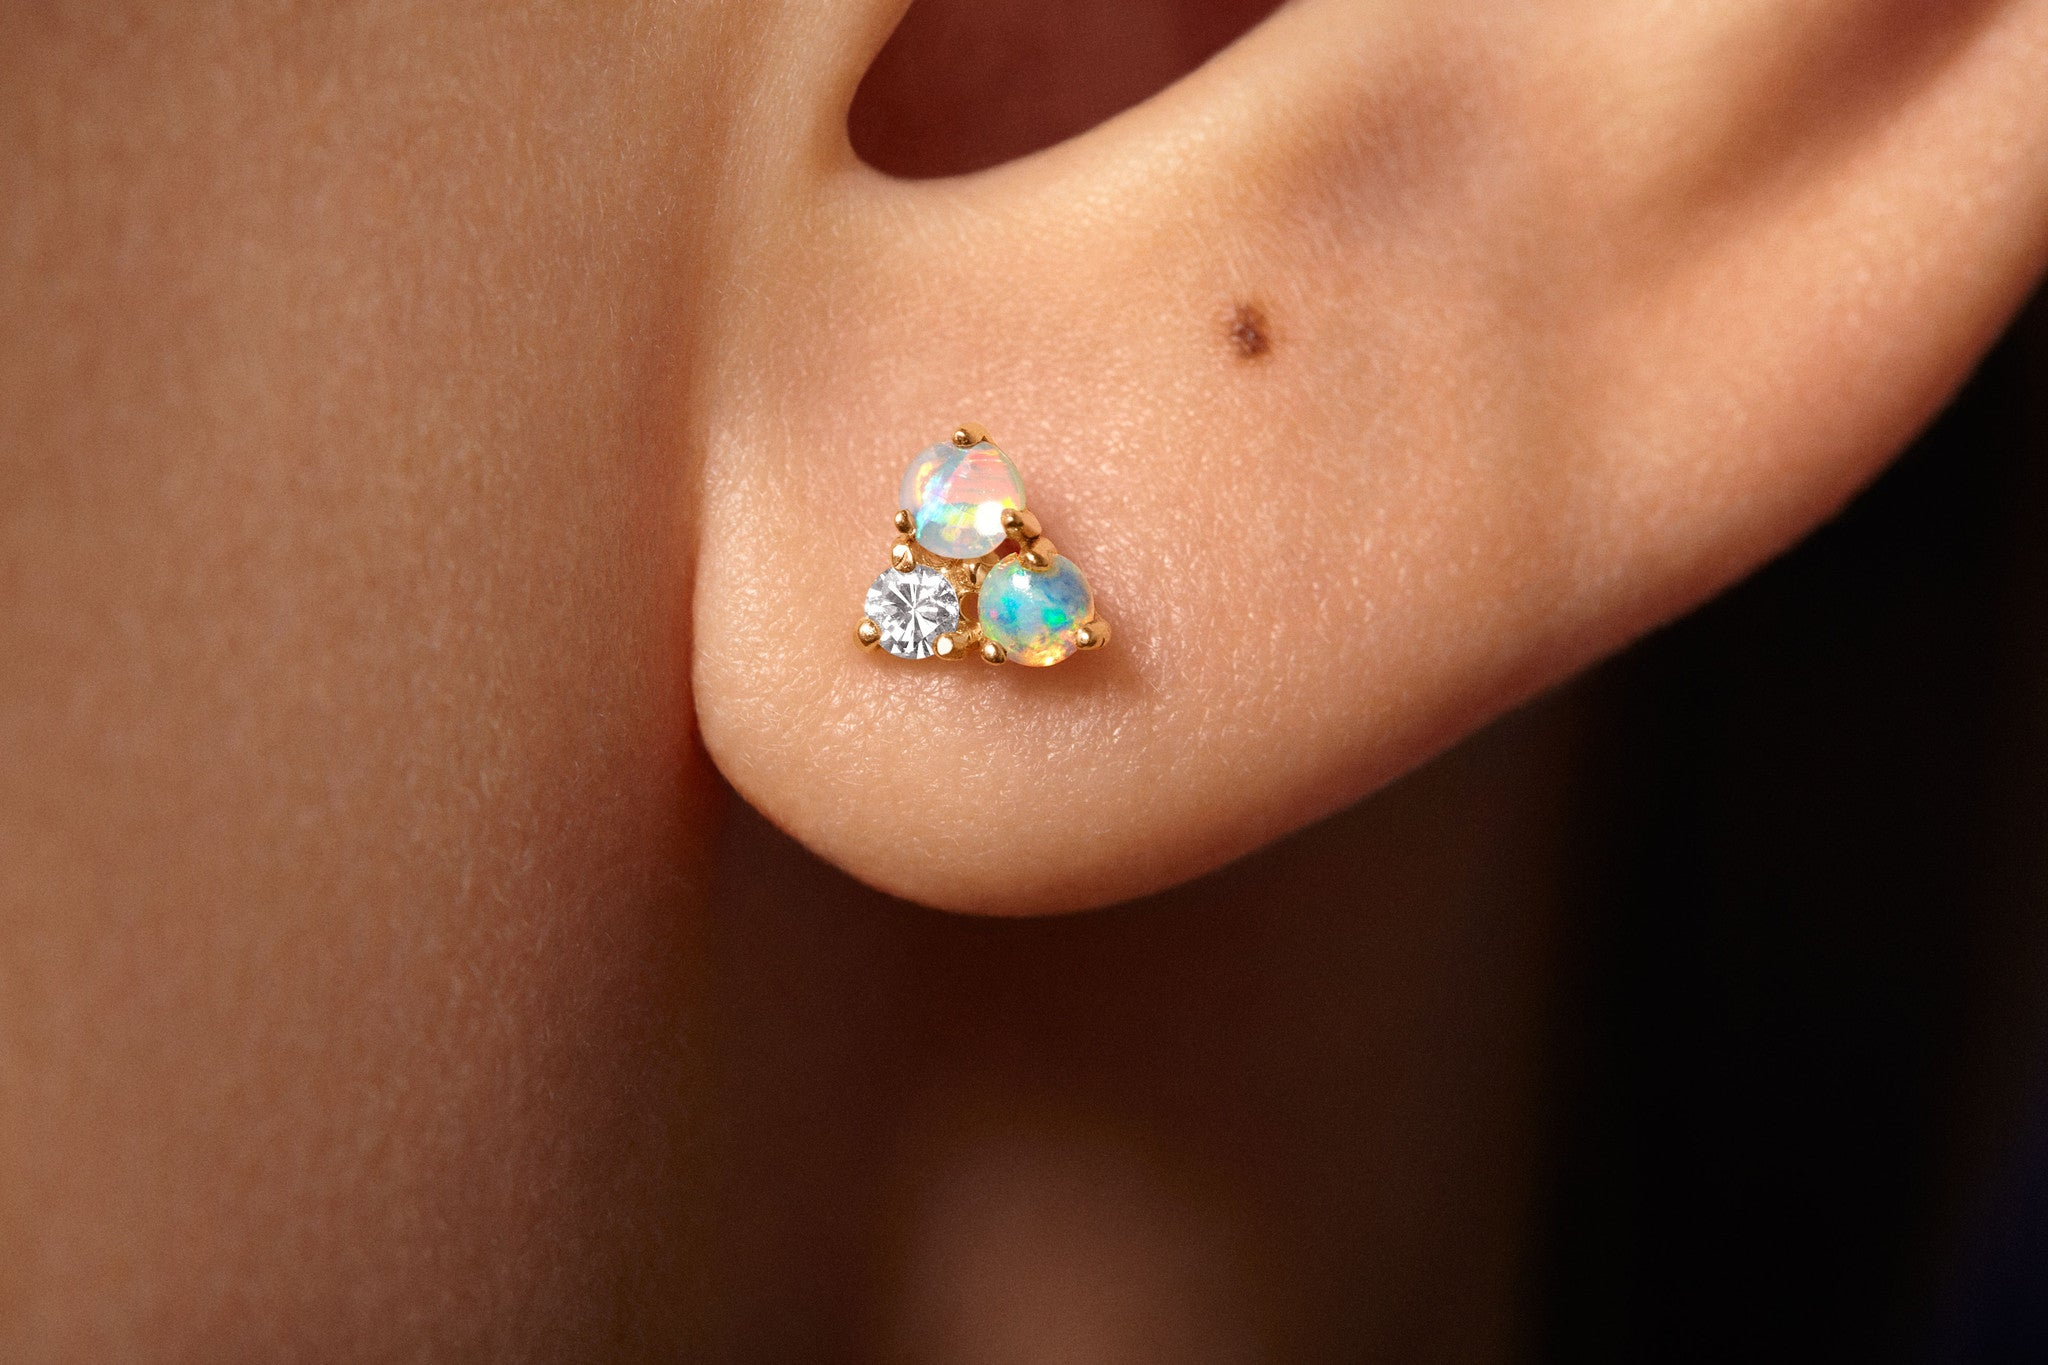 naples yg index opal earrings black i